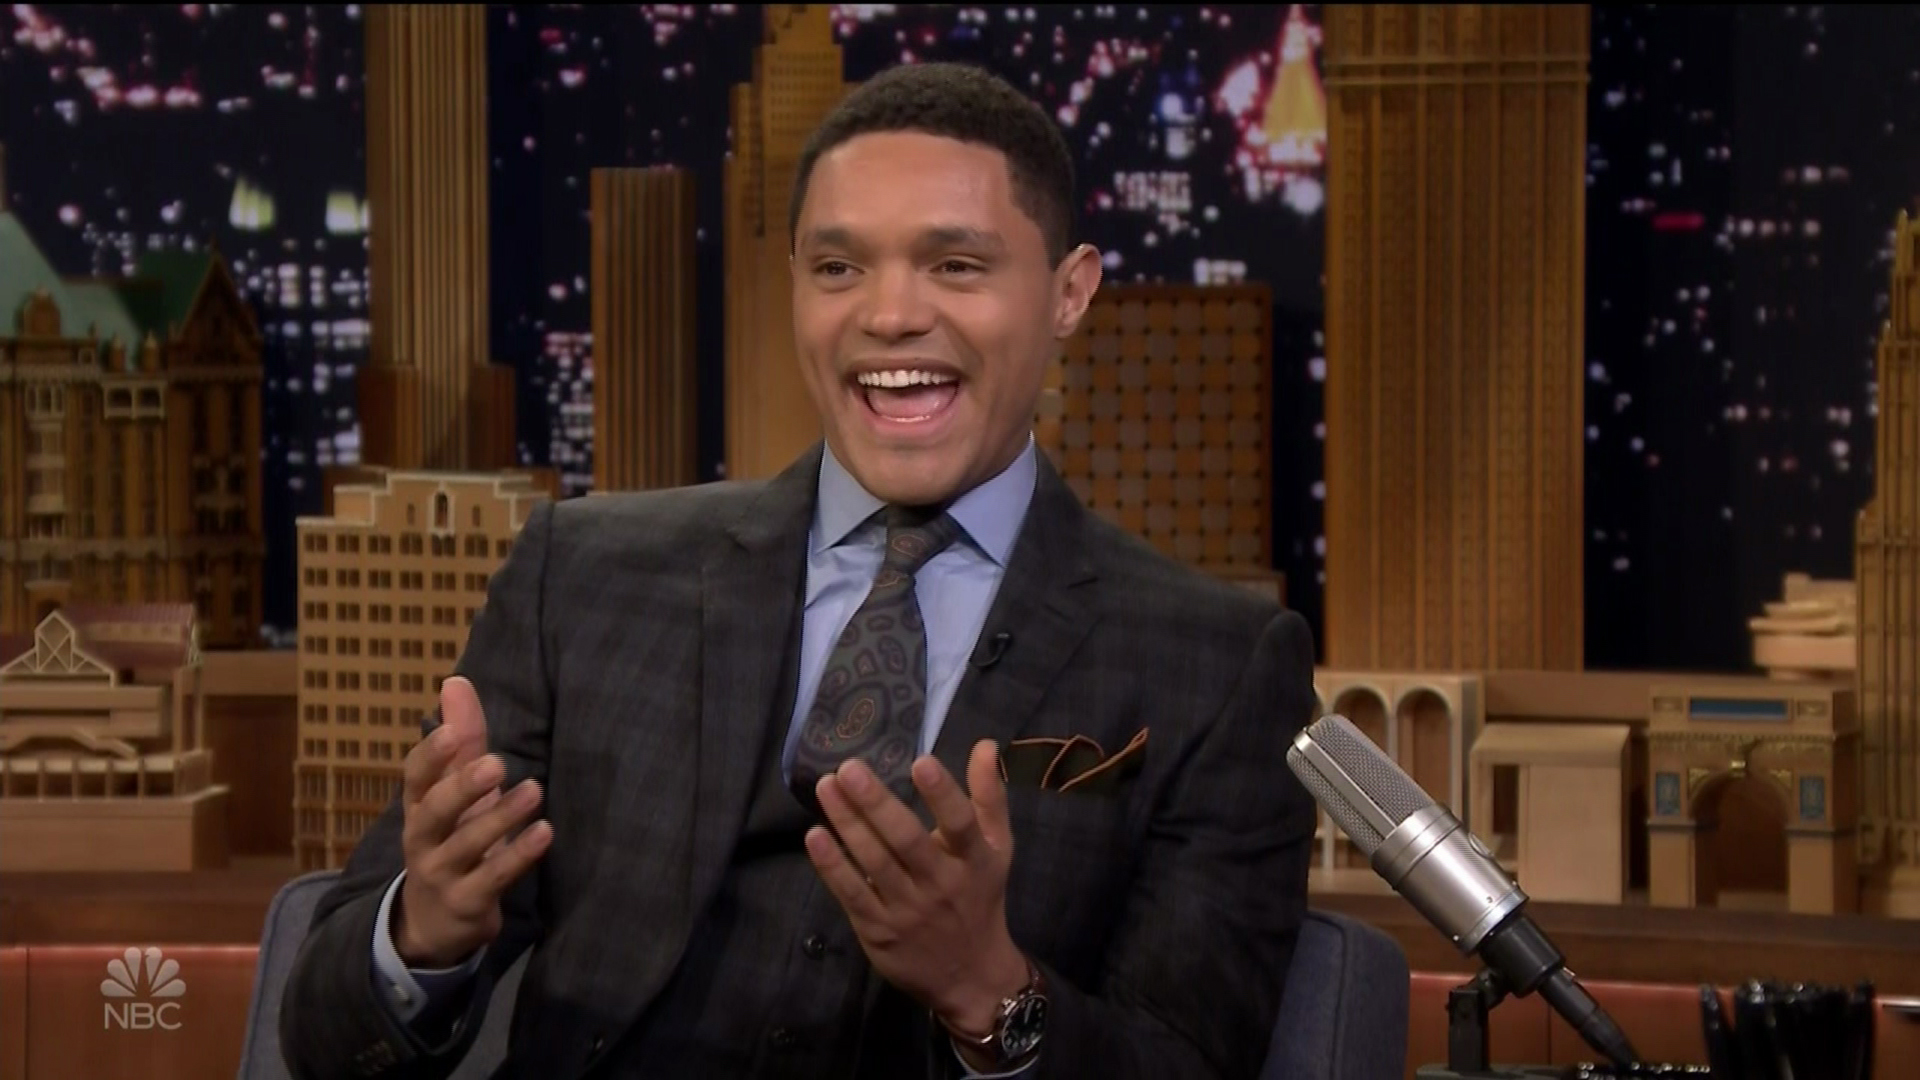 Trevor Noah during an appearance on NBC's 'The Tonight Show Starring Jimmy Fallon.'